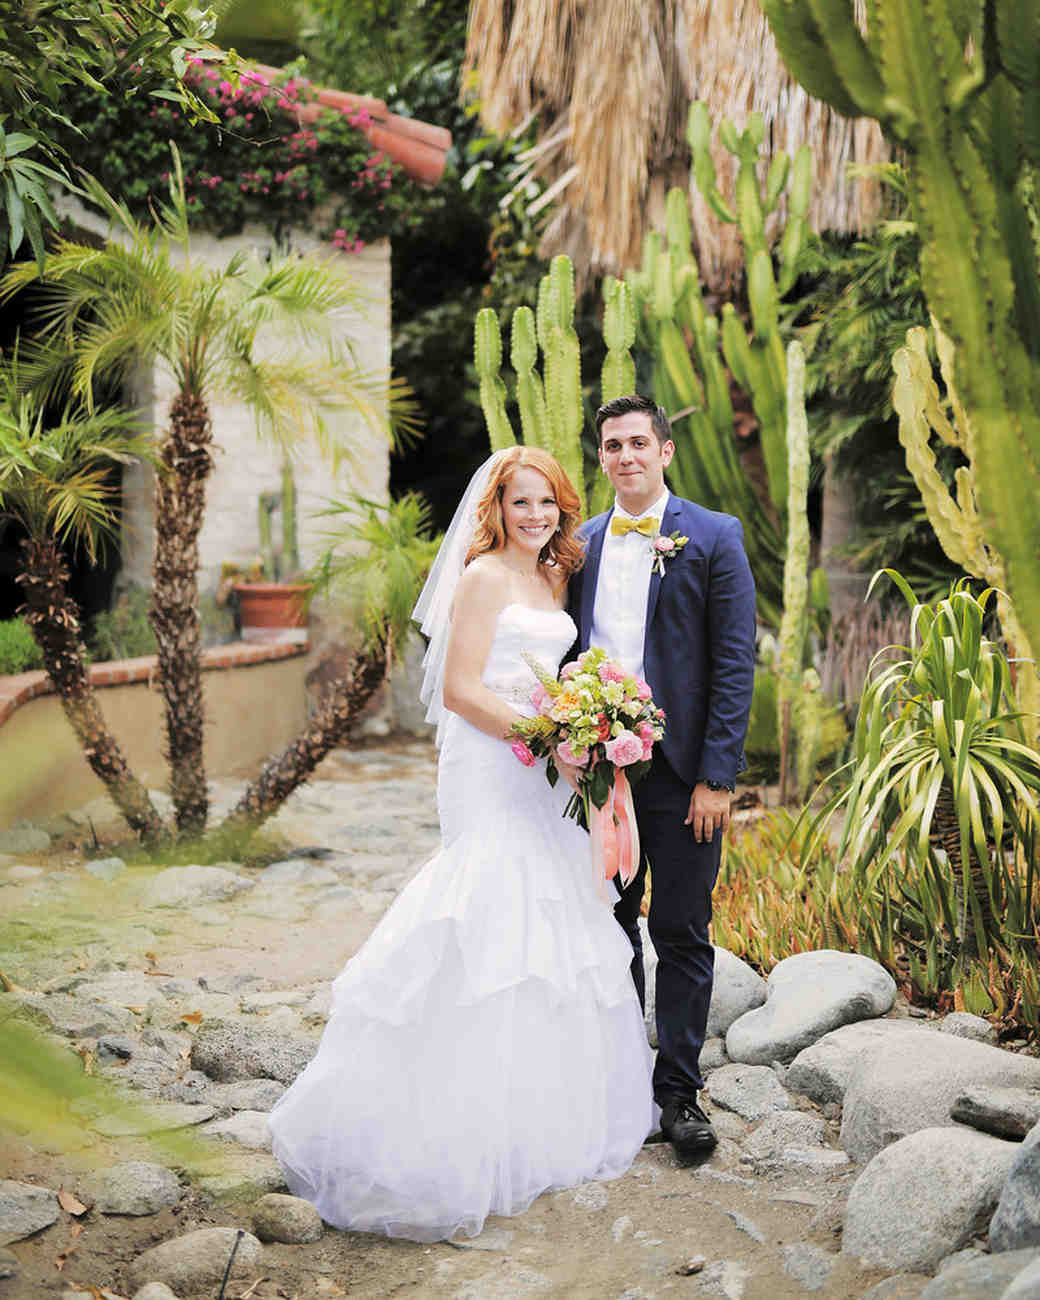 Katie Leclerc And Brian Habecost S Fun Palm Springs Wedding